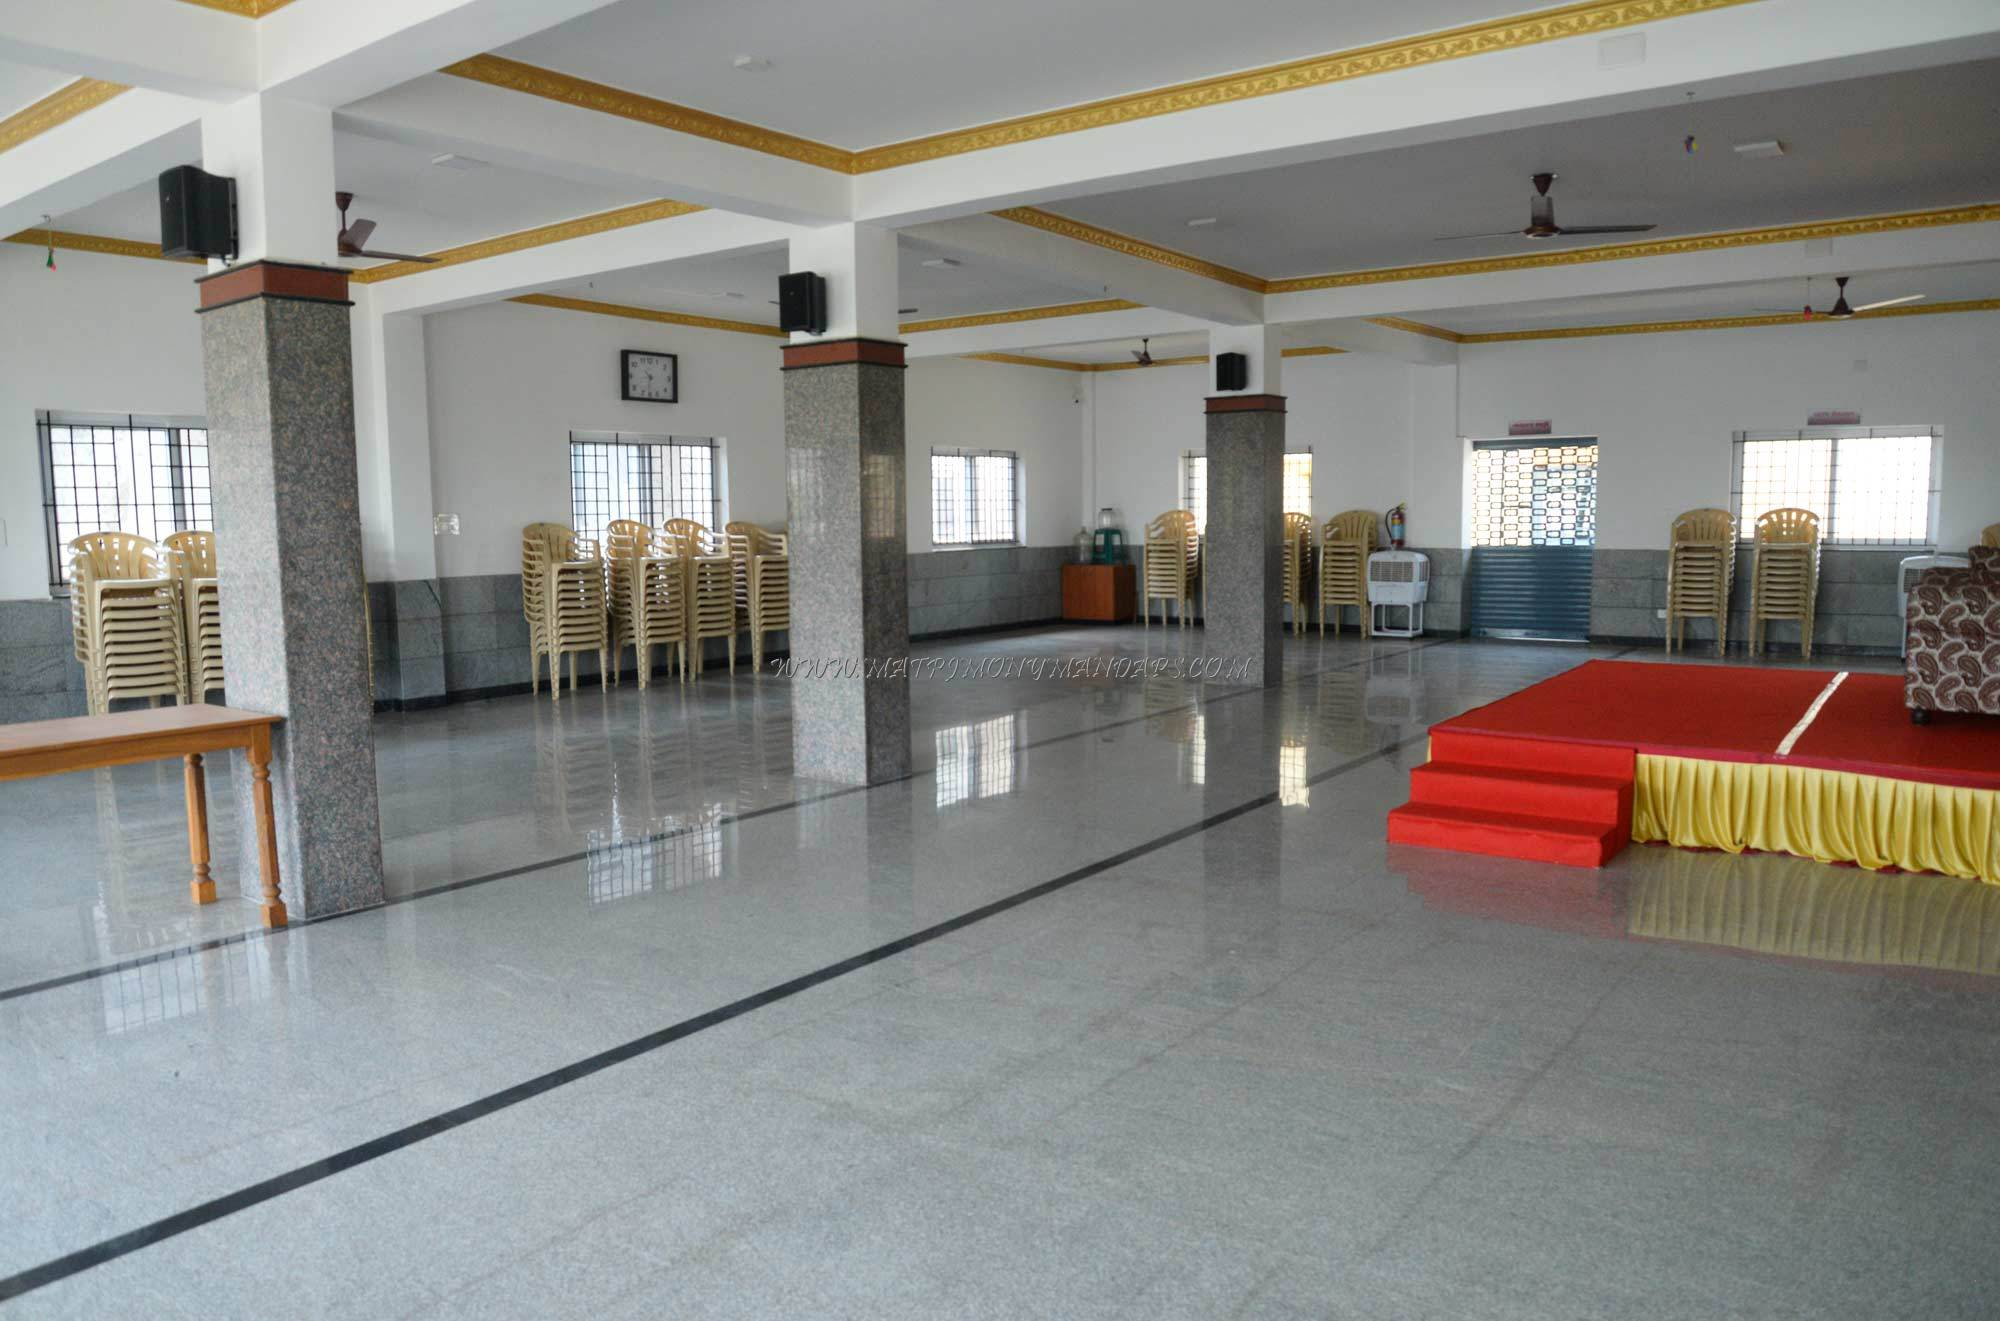 Find the availability of the Guru Krishna Mini Hall in Gandhipuram, Coimbatore and avail special offers